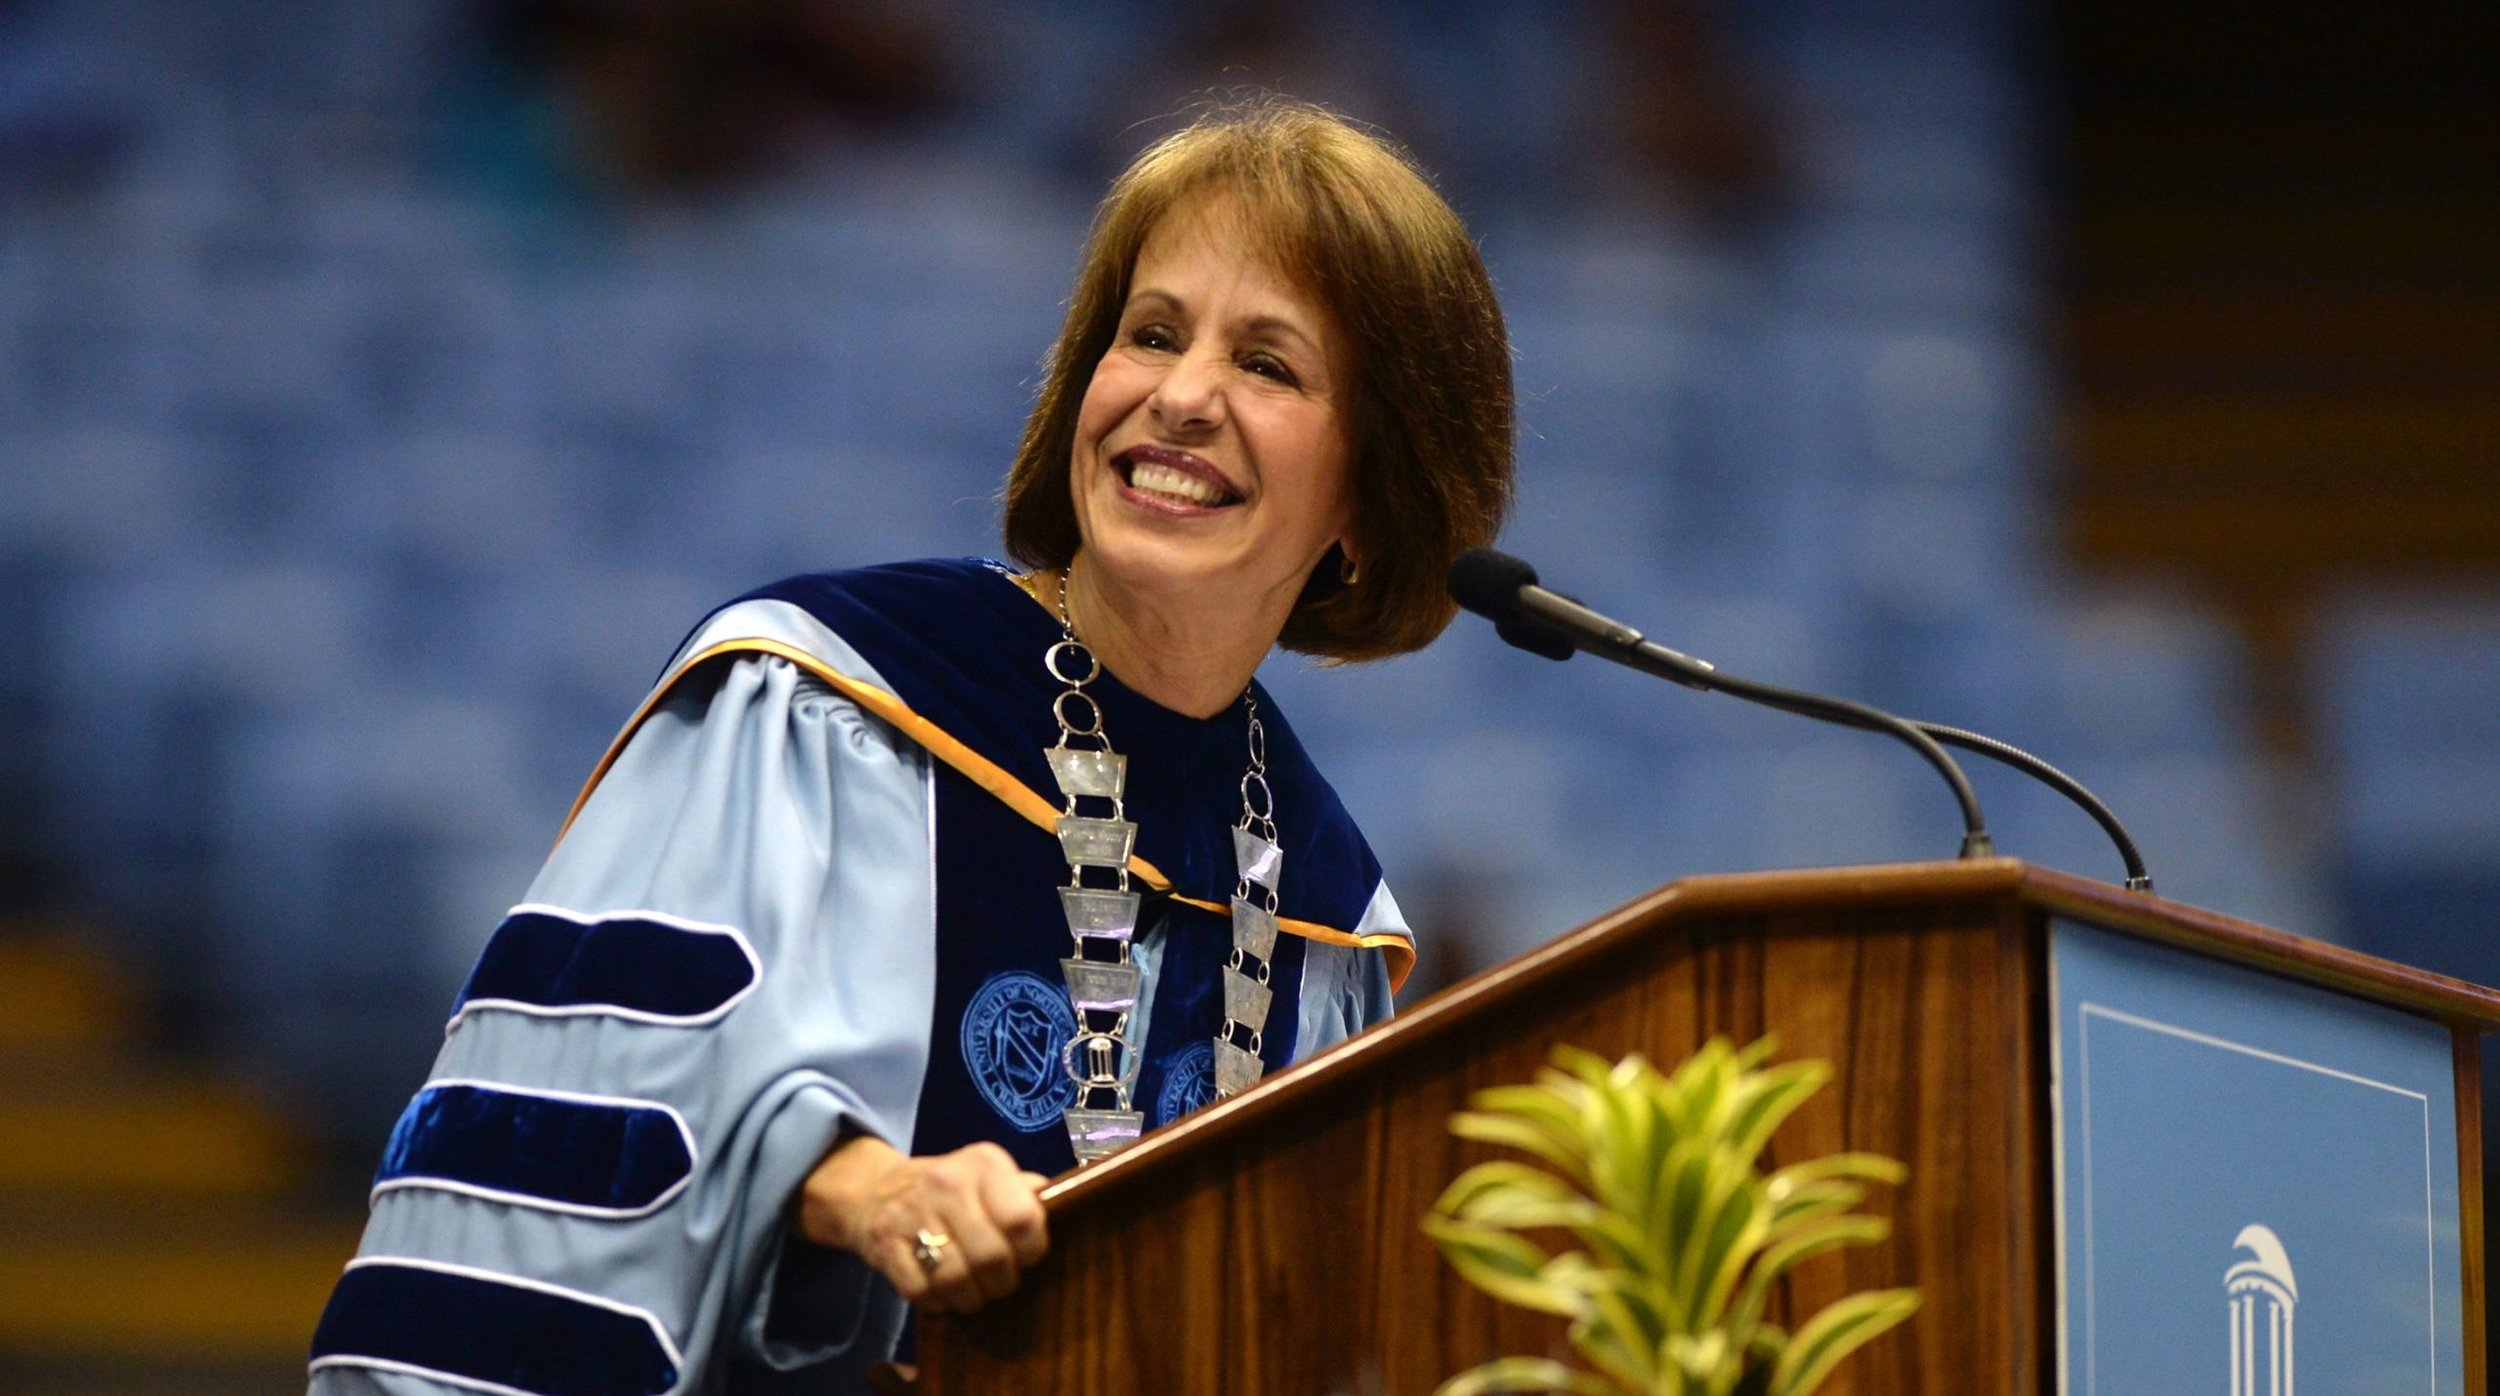 Chancellor Carol Folt, who will be resigning on January 31st, speaking at UNC's 2015 winter commencement ( Image )